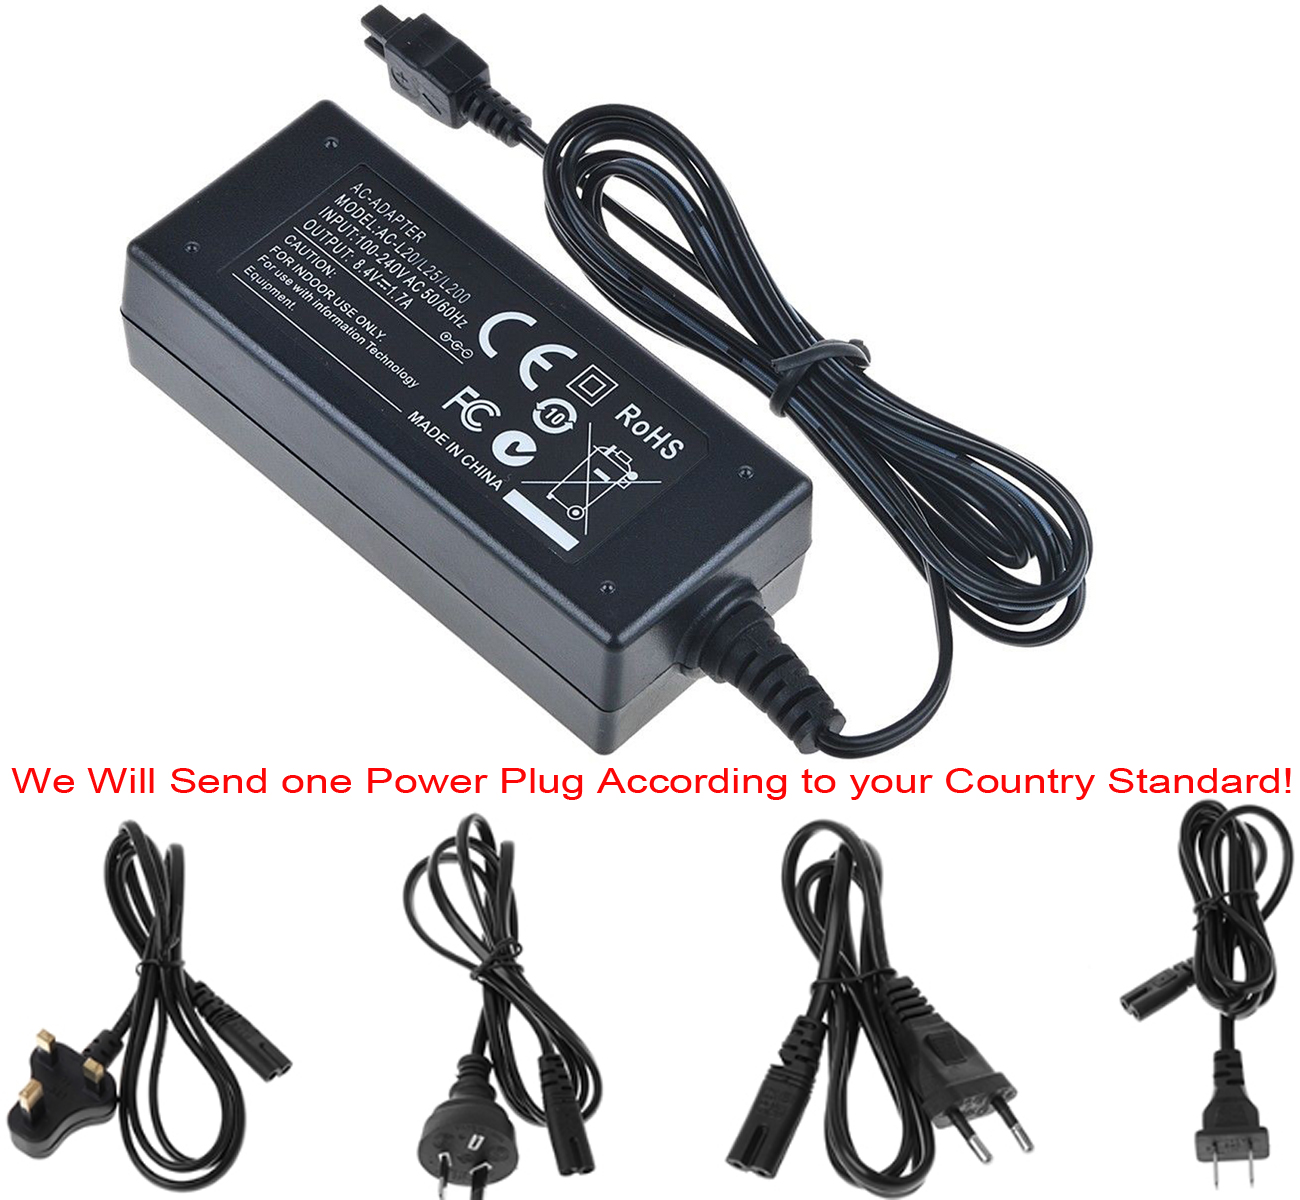 USB Travel Battery Charger for Sony DCR-DVD304 DCR-DVD403 DCR-DVD404 DCR-DVD405 Handycam Camcorder DCR-DVD305